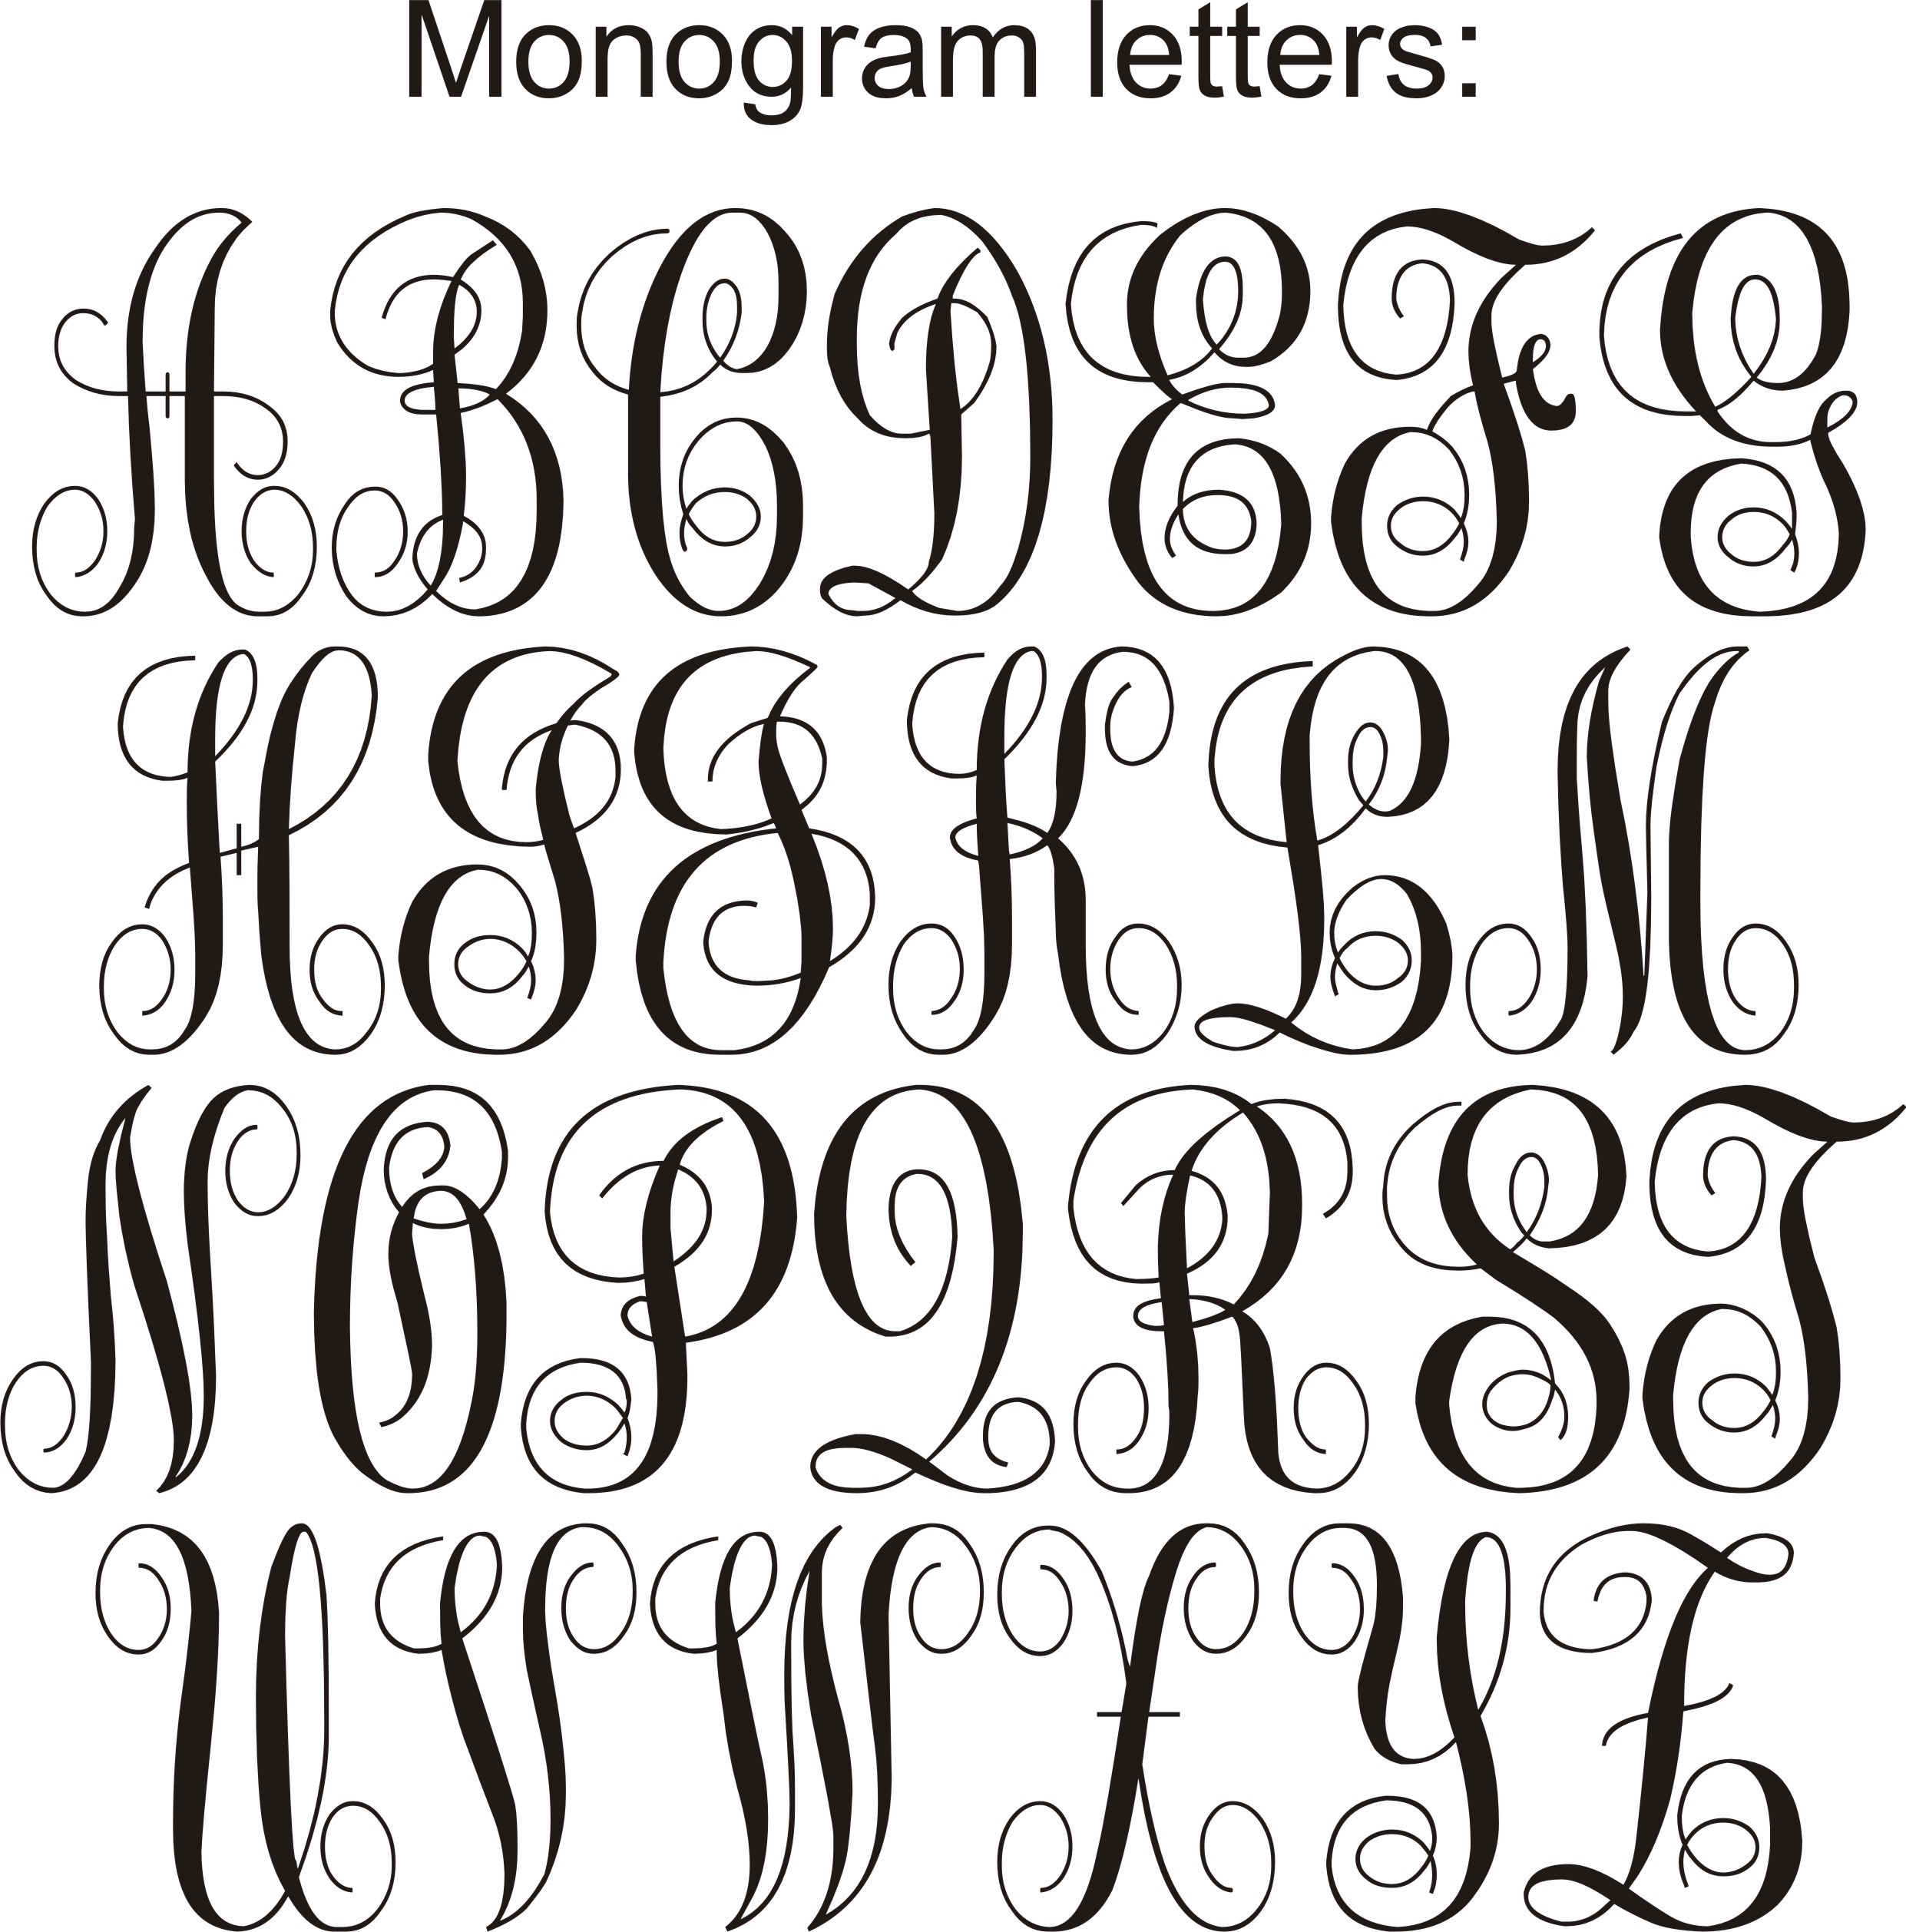 Printable Monogram Letters (70+ Images In Collection) Page 1 - Free Printable Monogram Letters